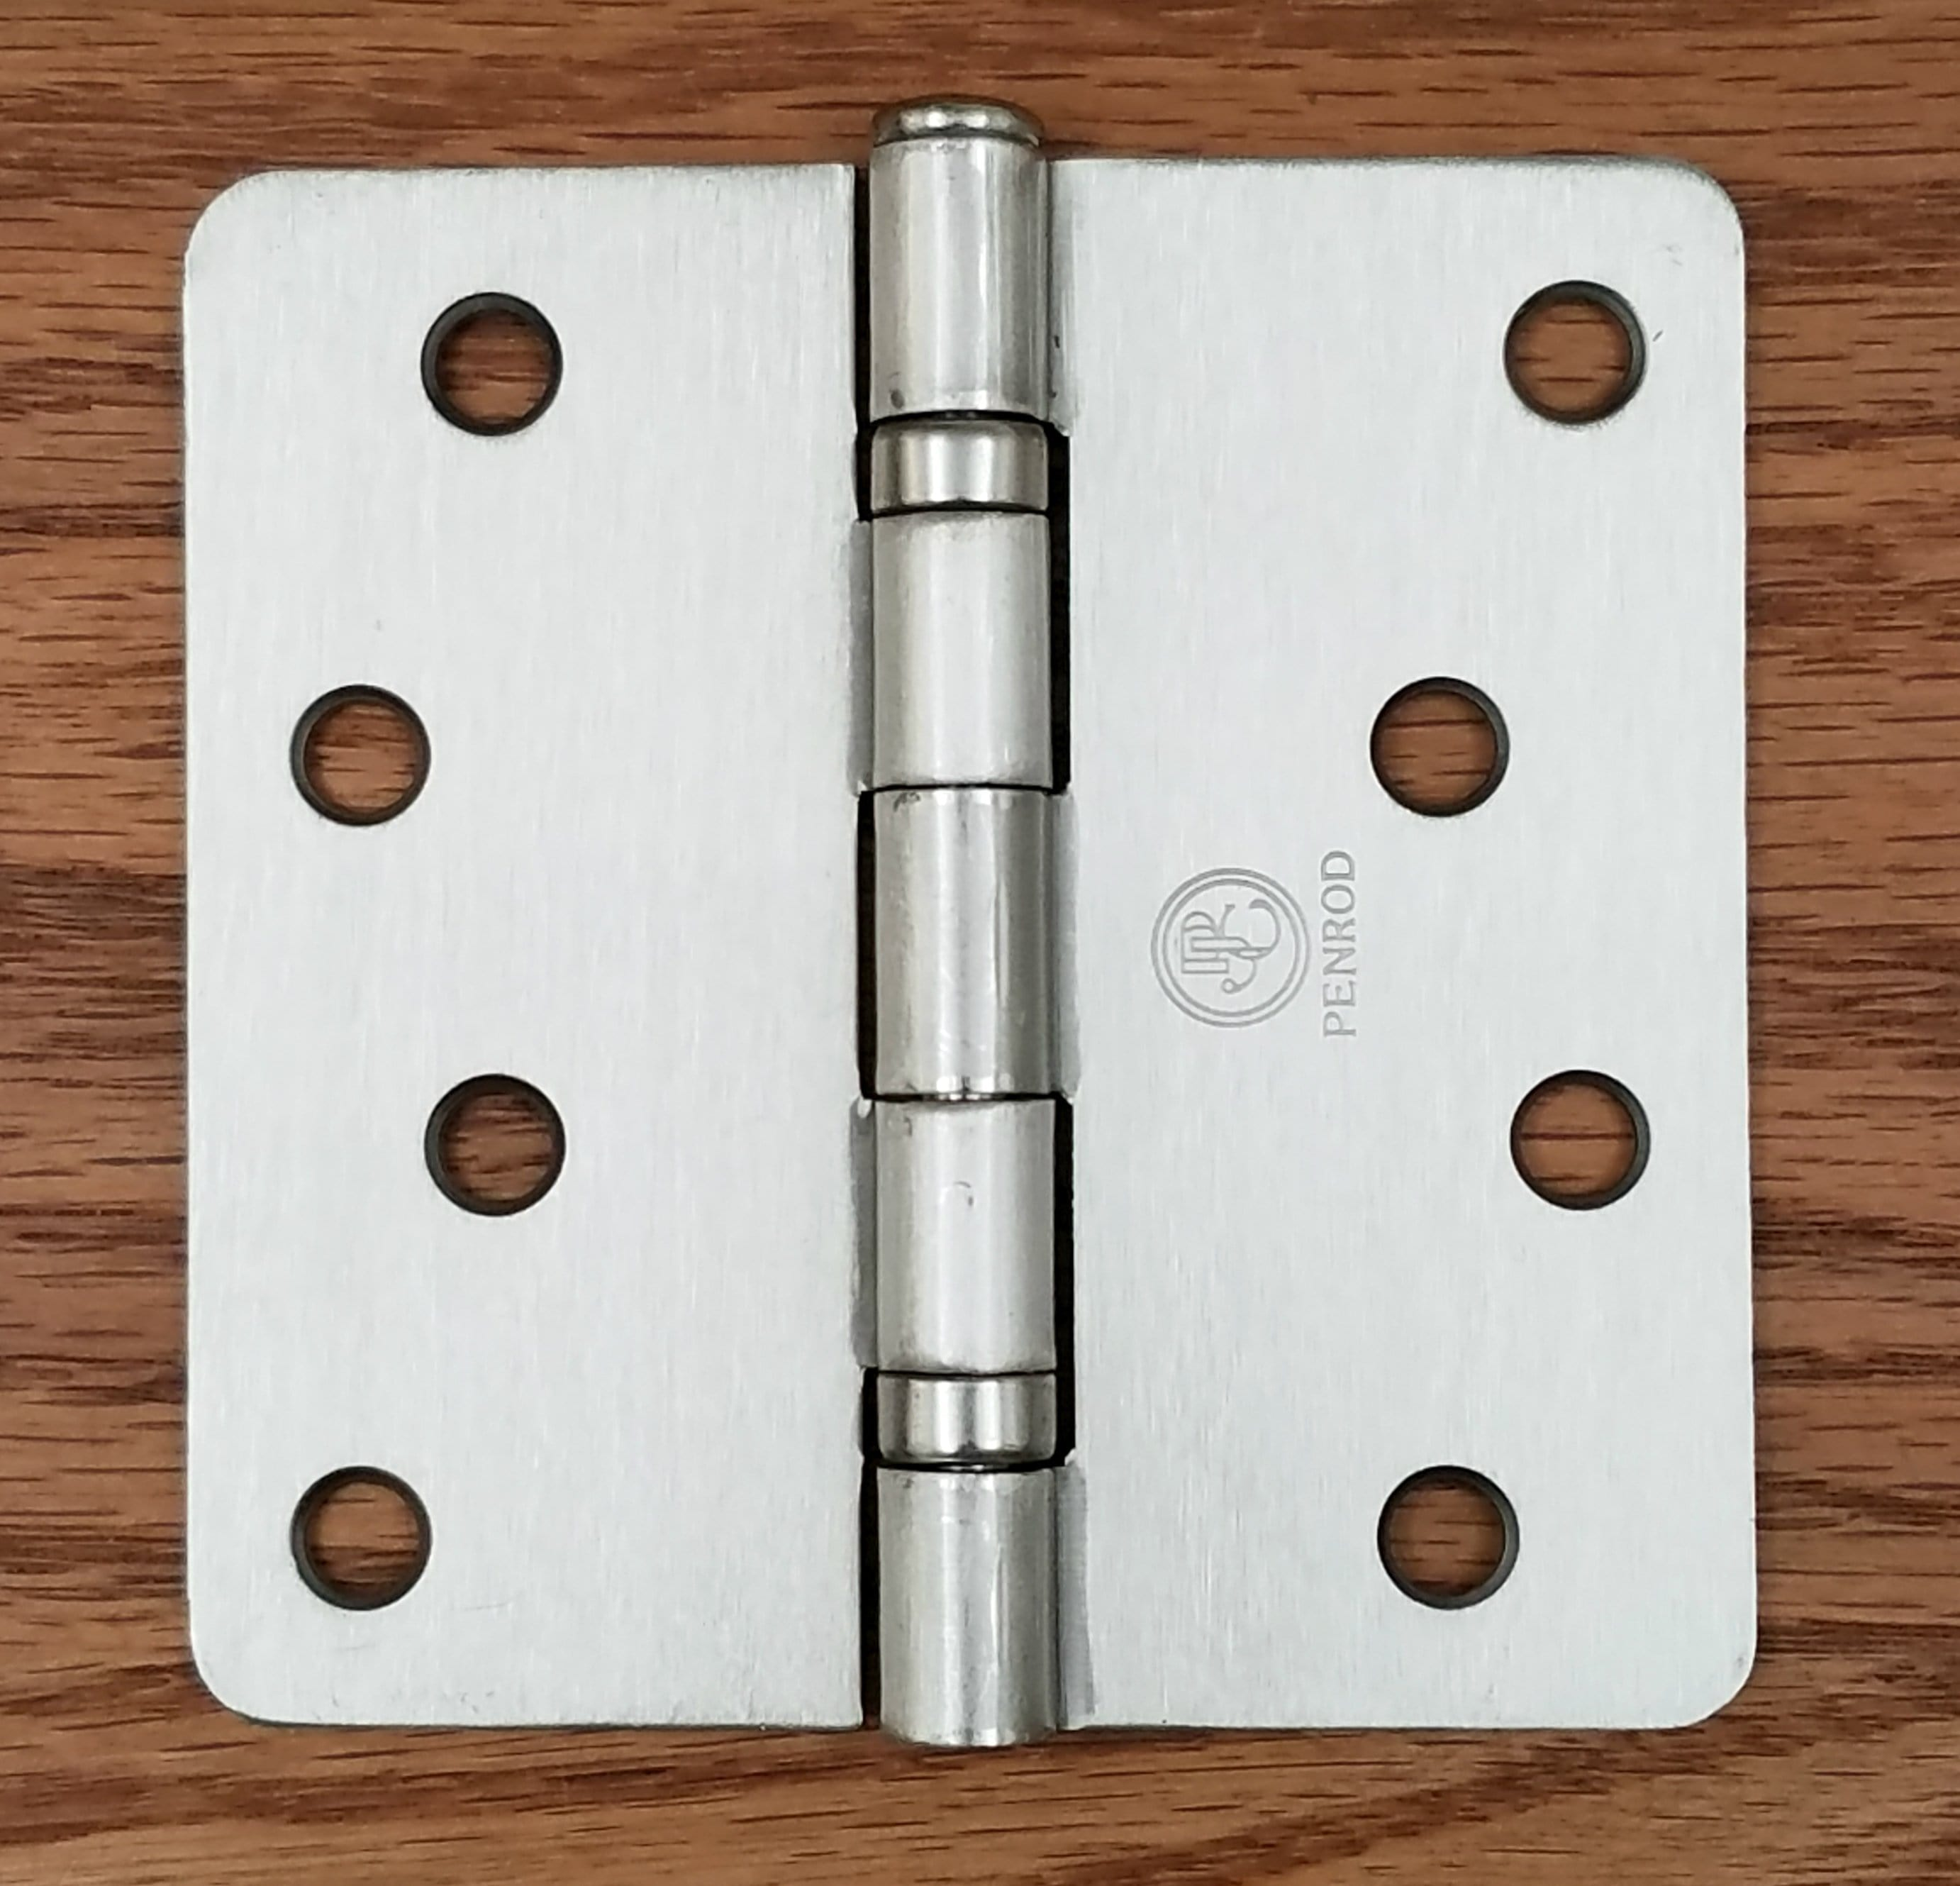 Residential Penrod Ball Bearing Hinges - 4 inch with 1/4 inch Radius Corner - Satin Nickel - 3 Pack